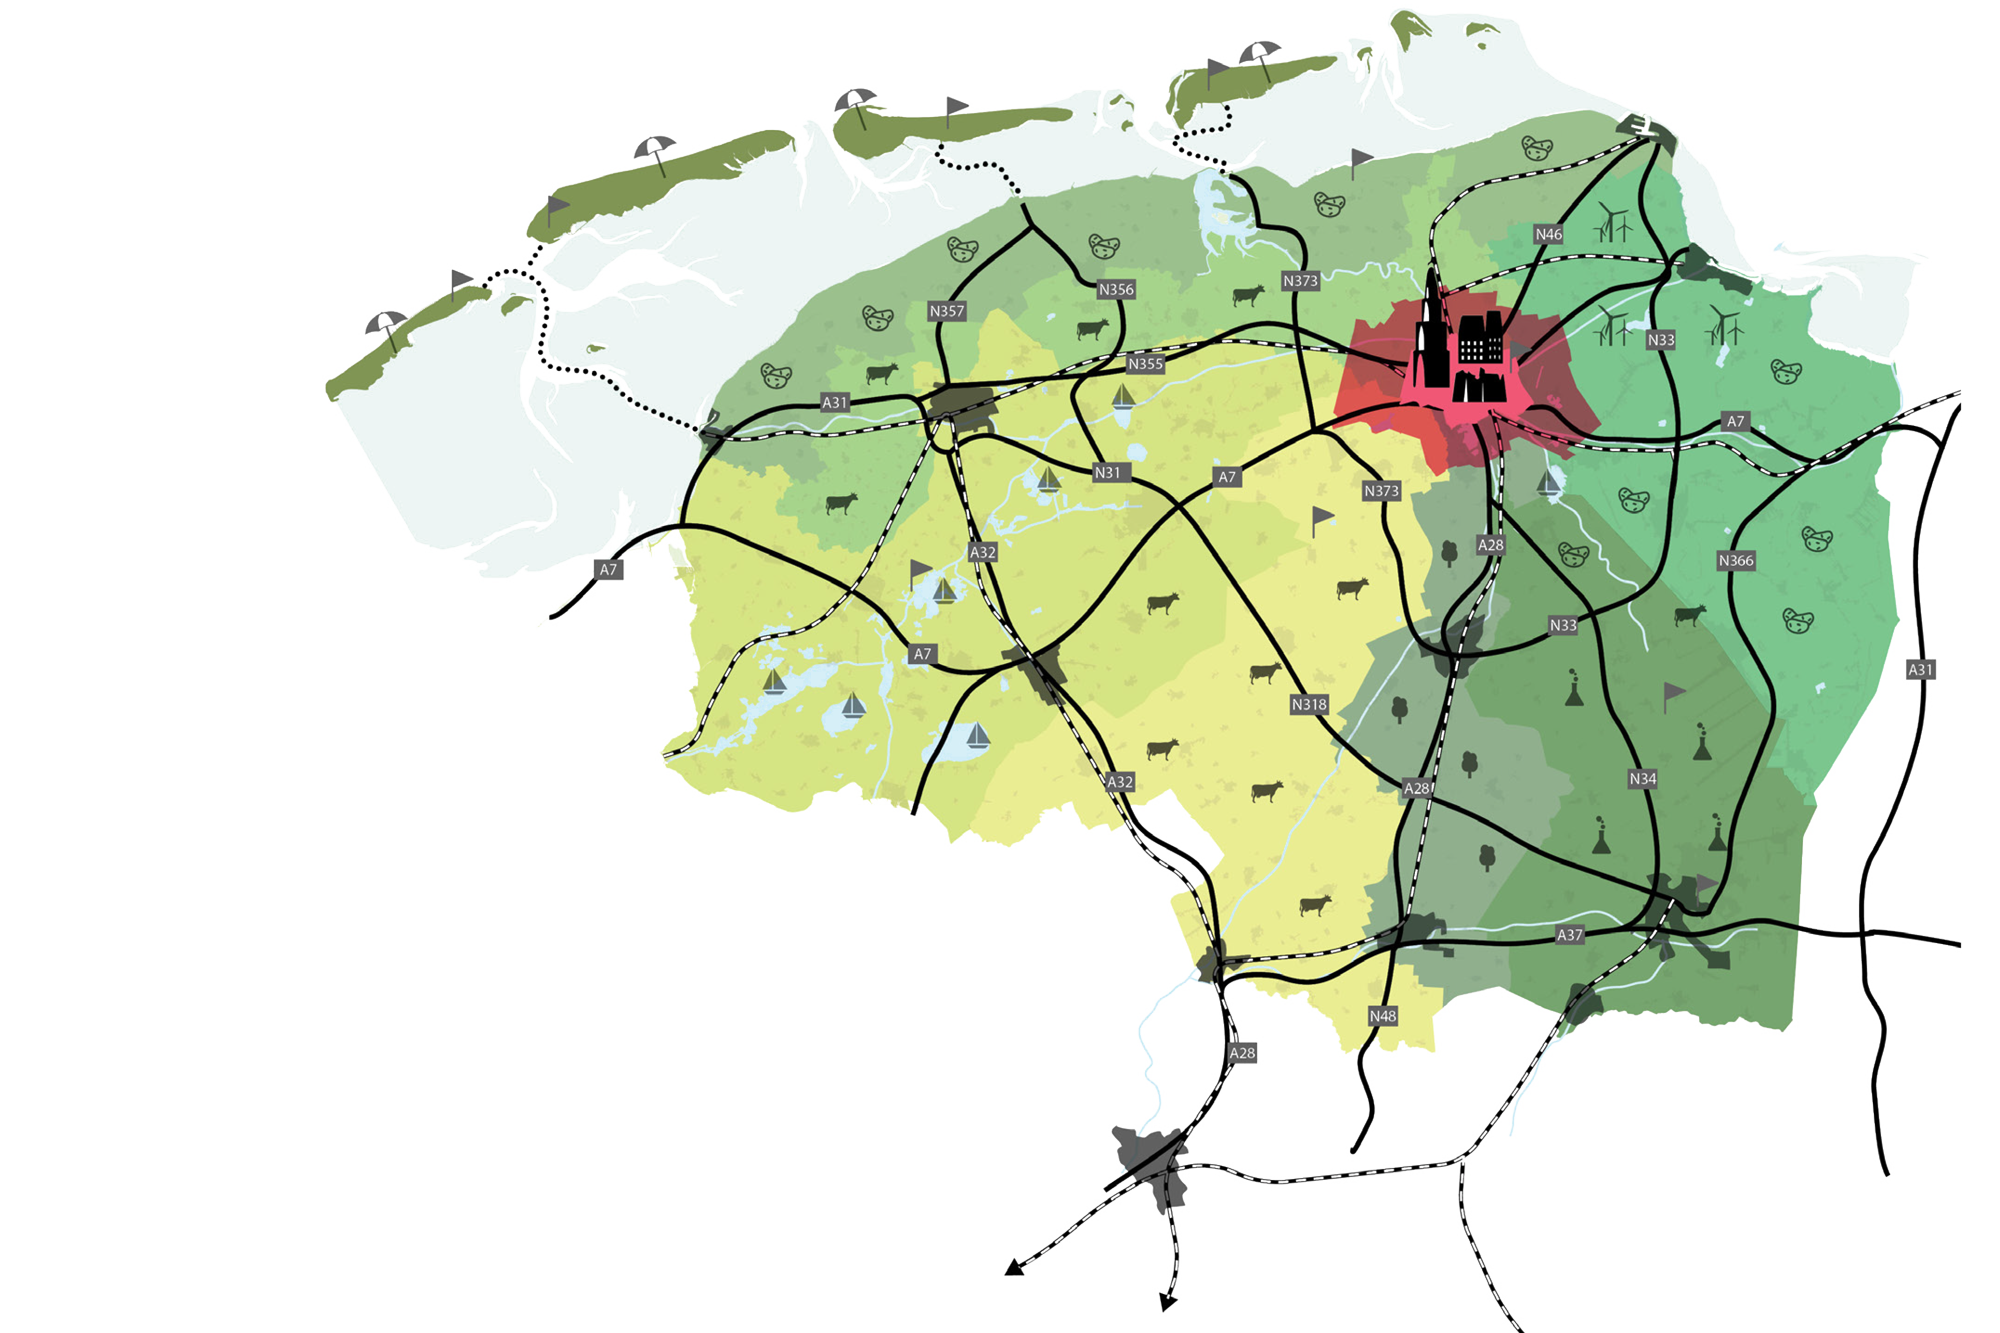 Study on Empowering the Northern Netherlands 7